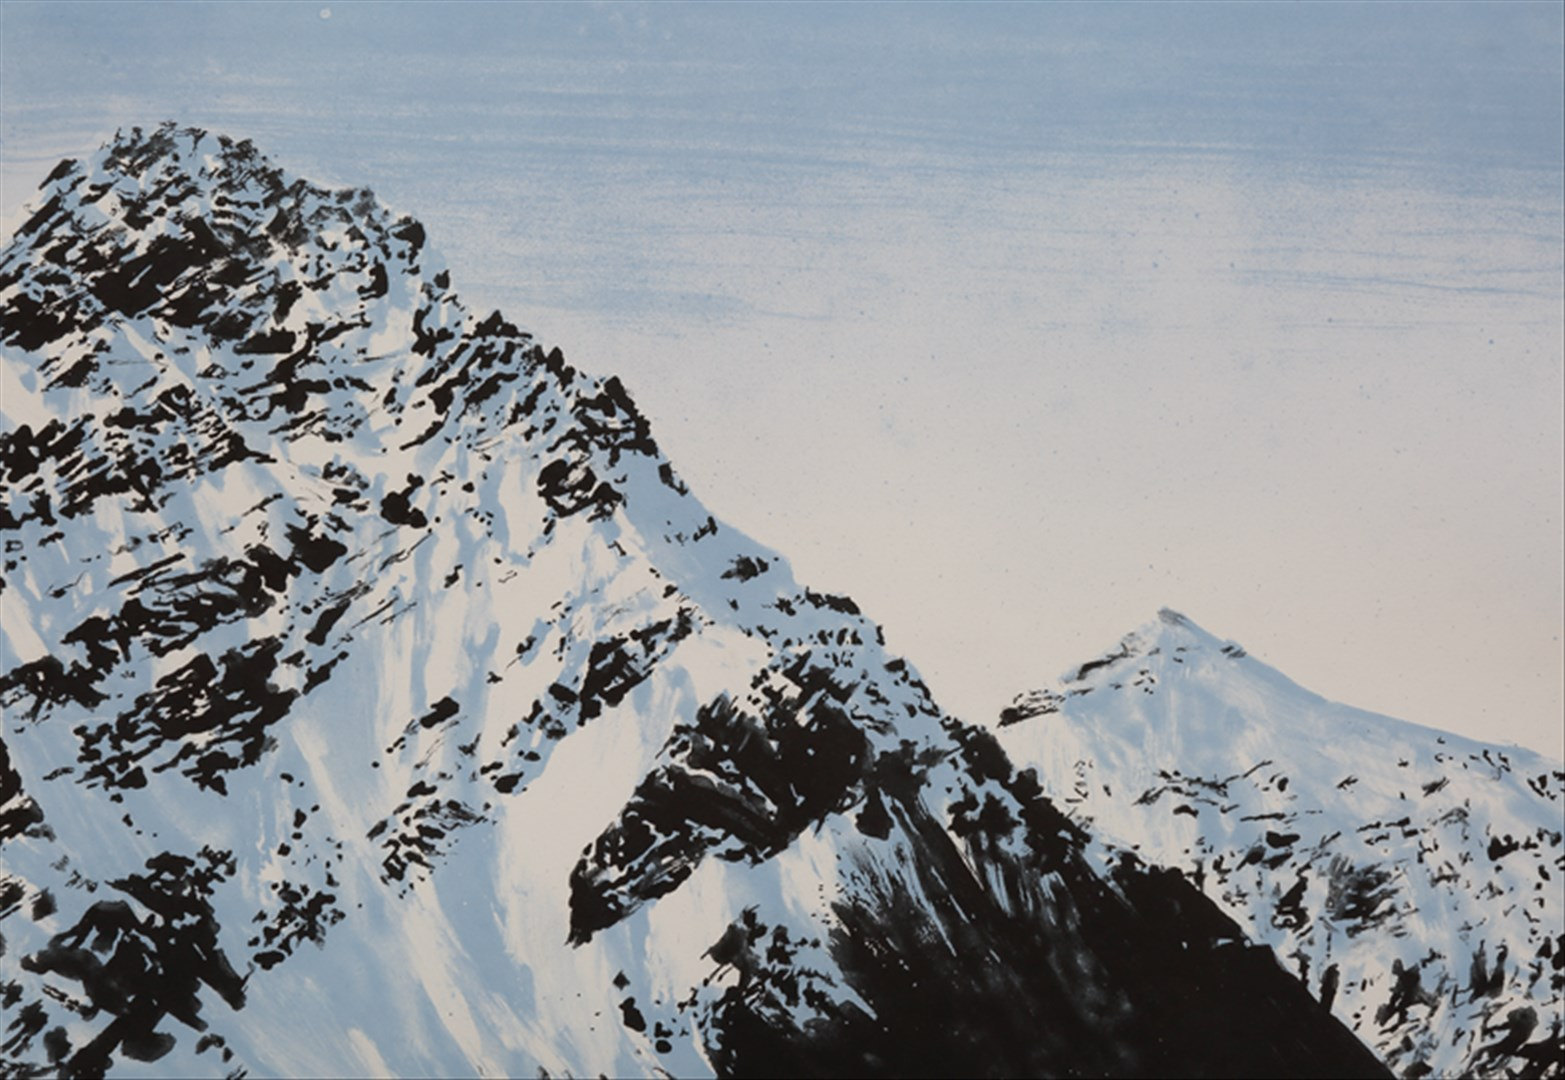 Emma Stibbon RA - Snowline, Svalbard (intaglio print with hand colouring, edition of 40) - Royal Academy Summer Exhibition 2021 - London lifestyle & culture blog